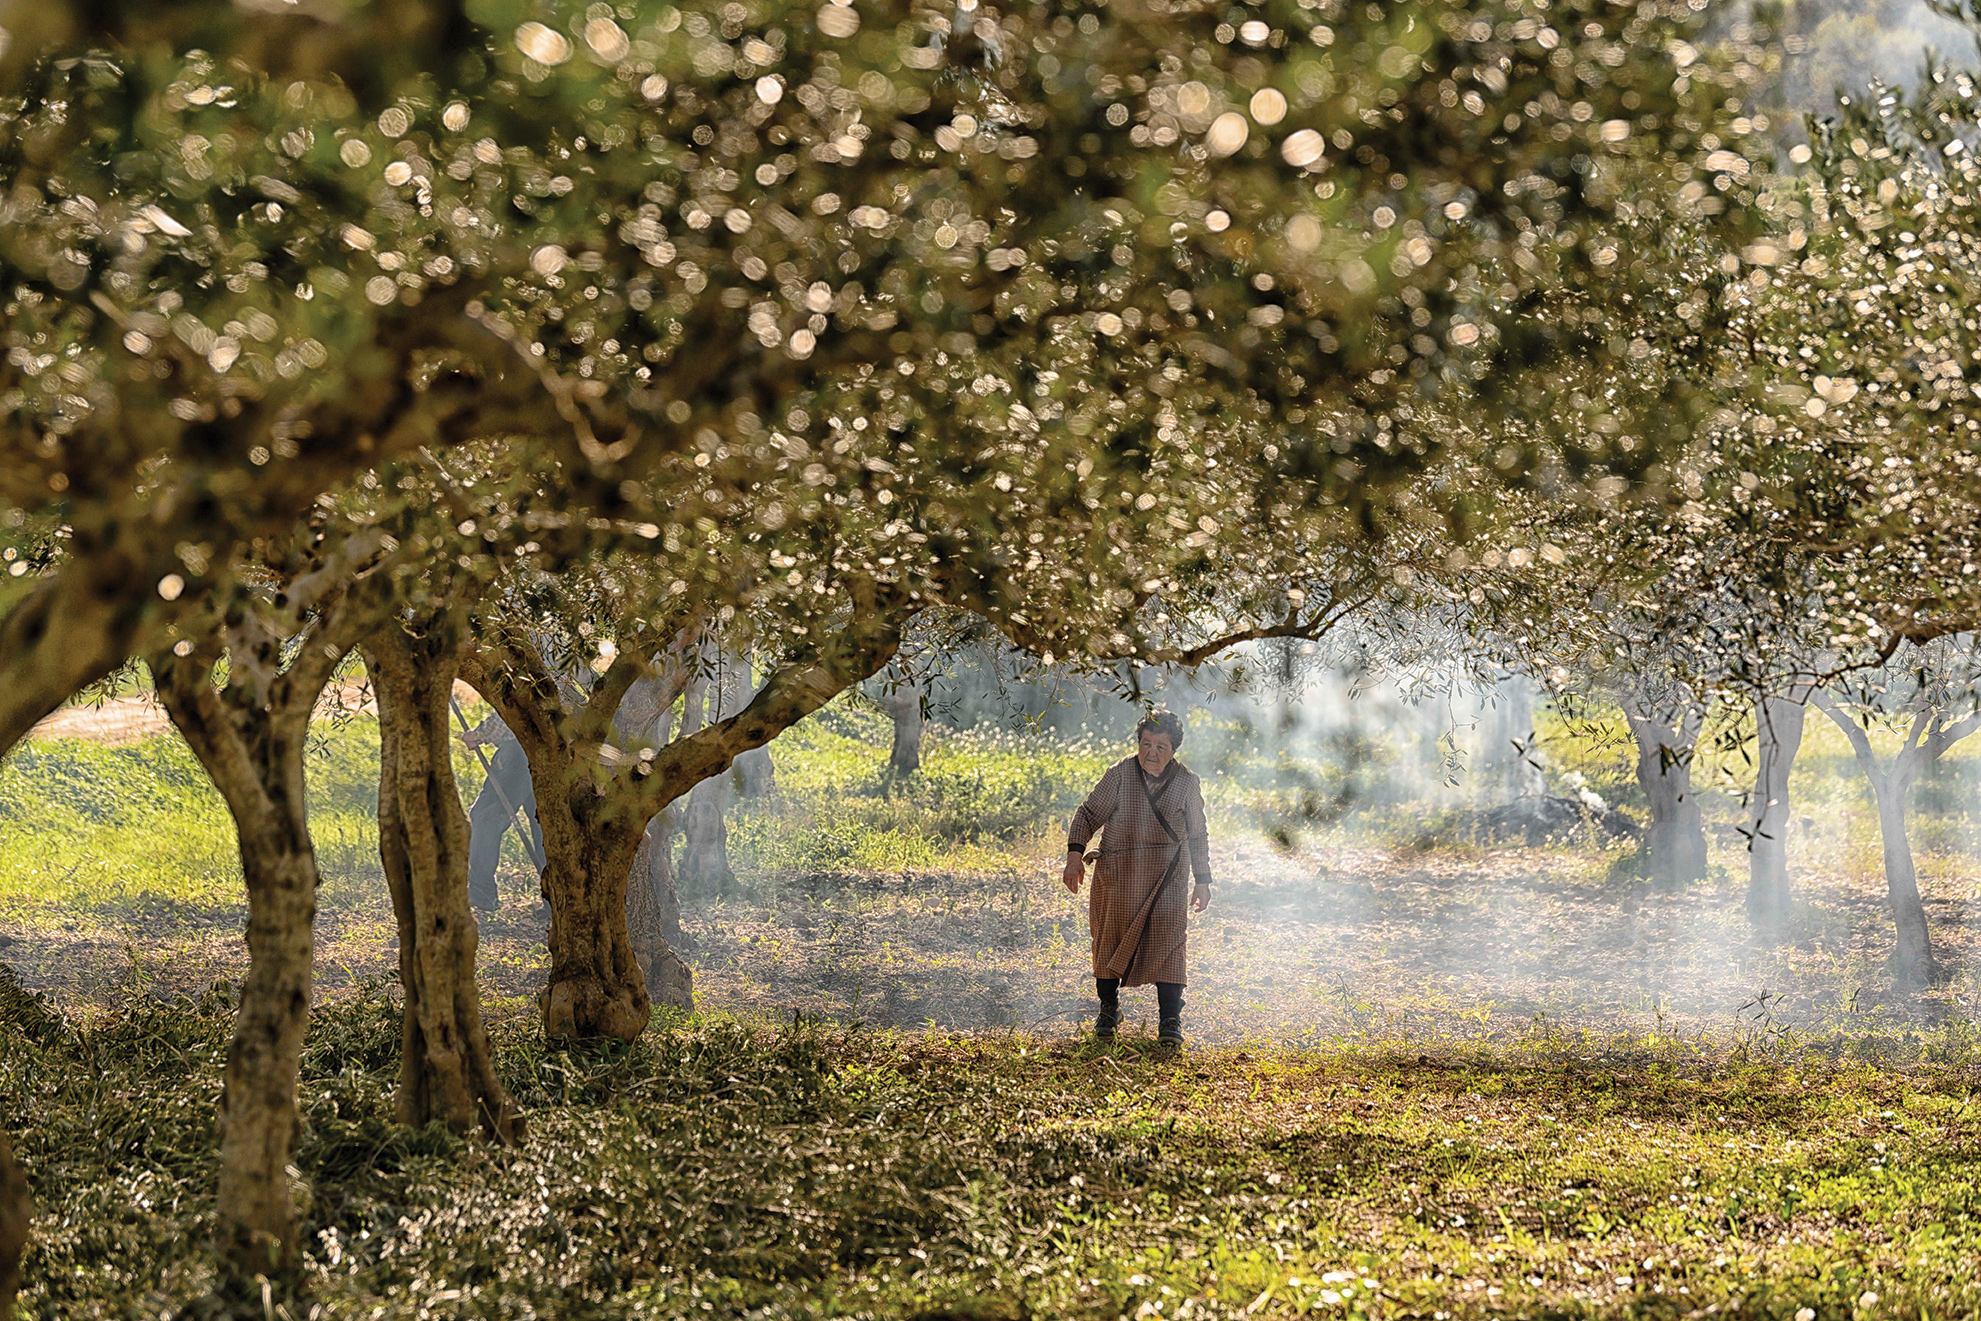 Locals harvesting olives, a common sight in San Vito. Photo: Jeff Rueppel.